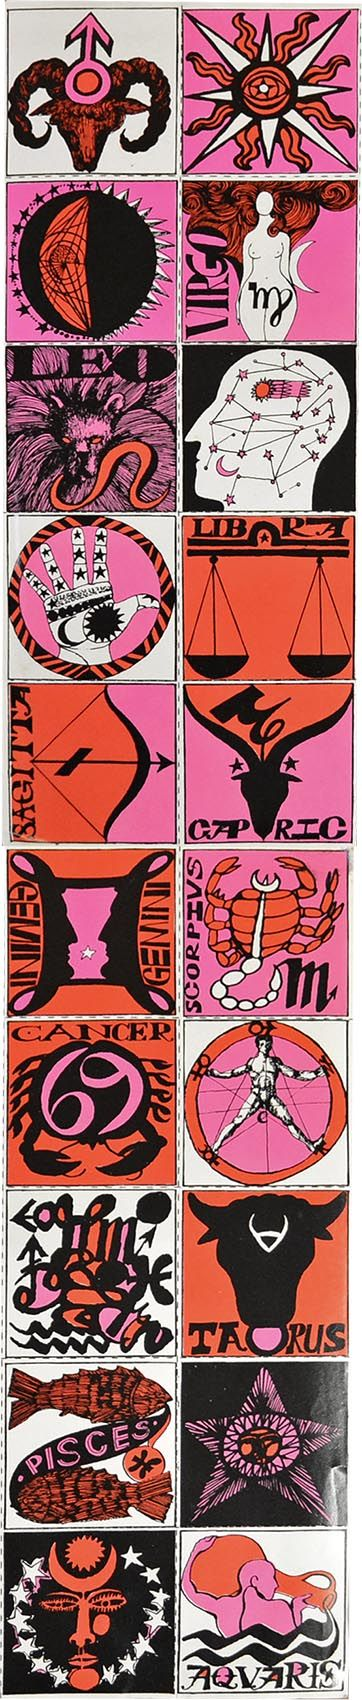 1960's illustrated stickers of the Zodiac